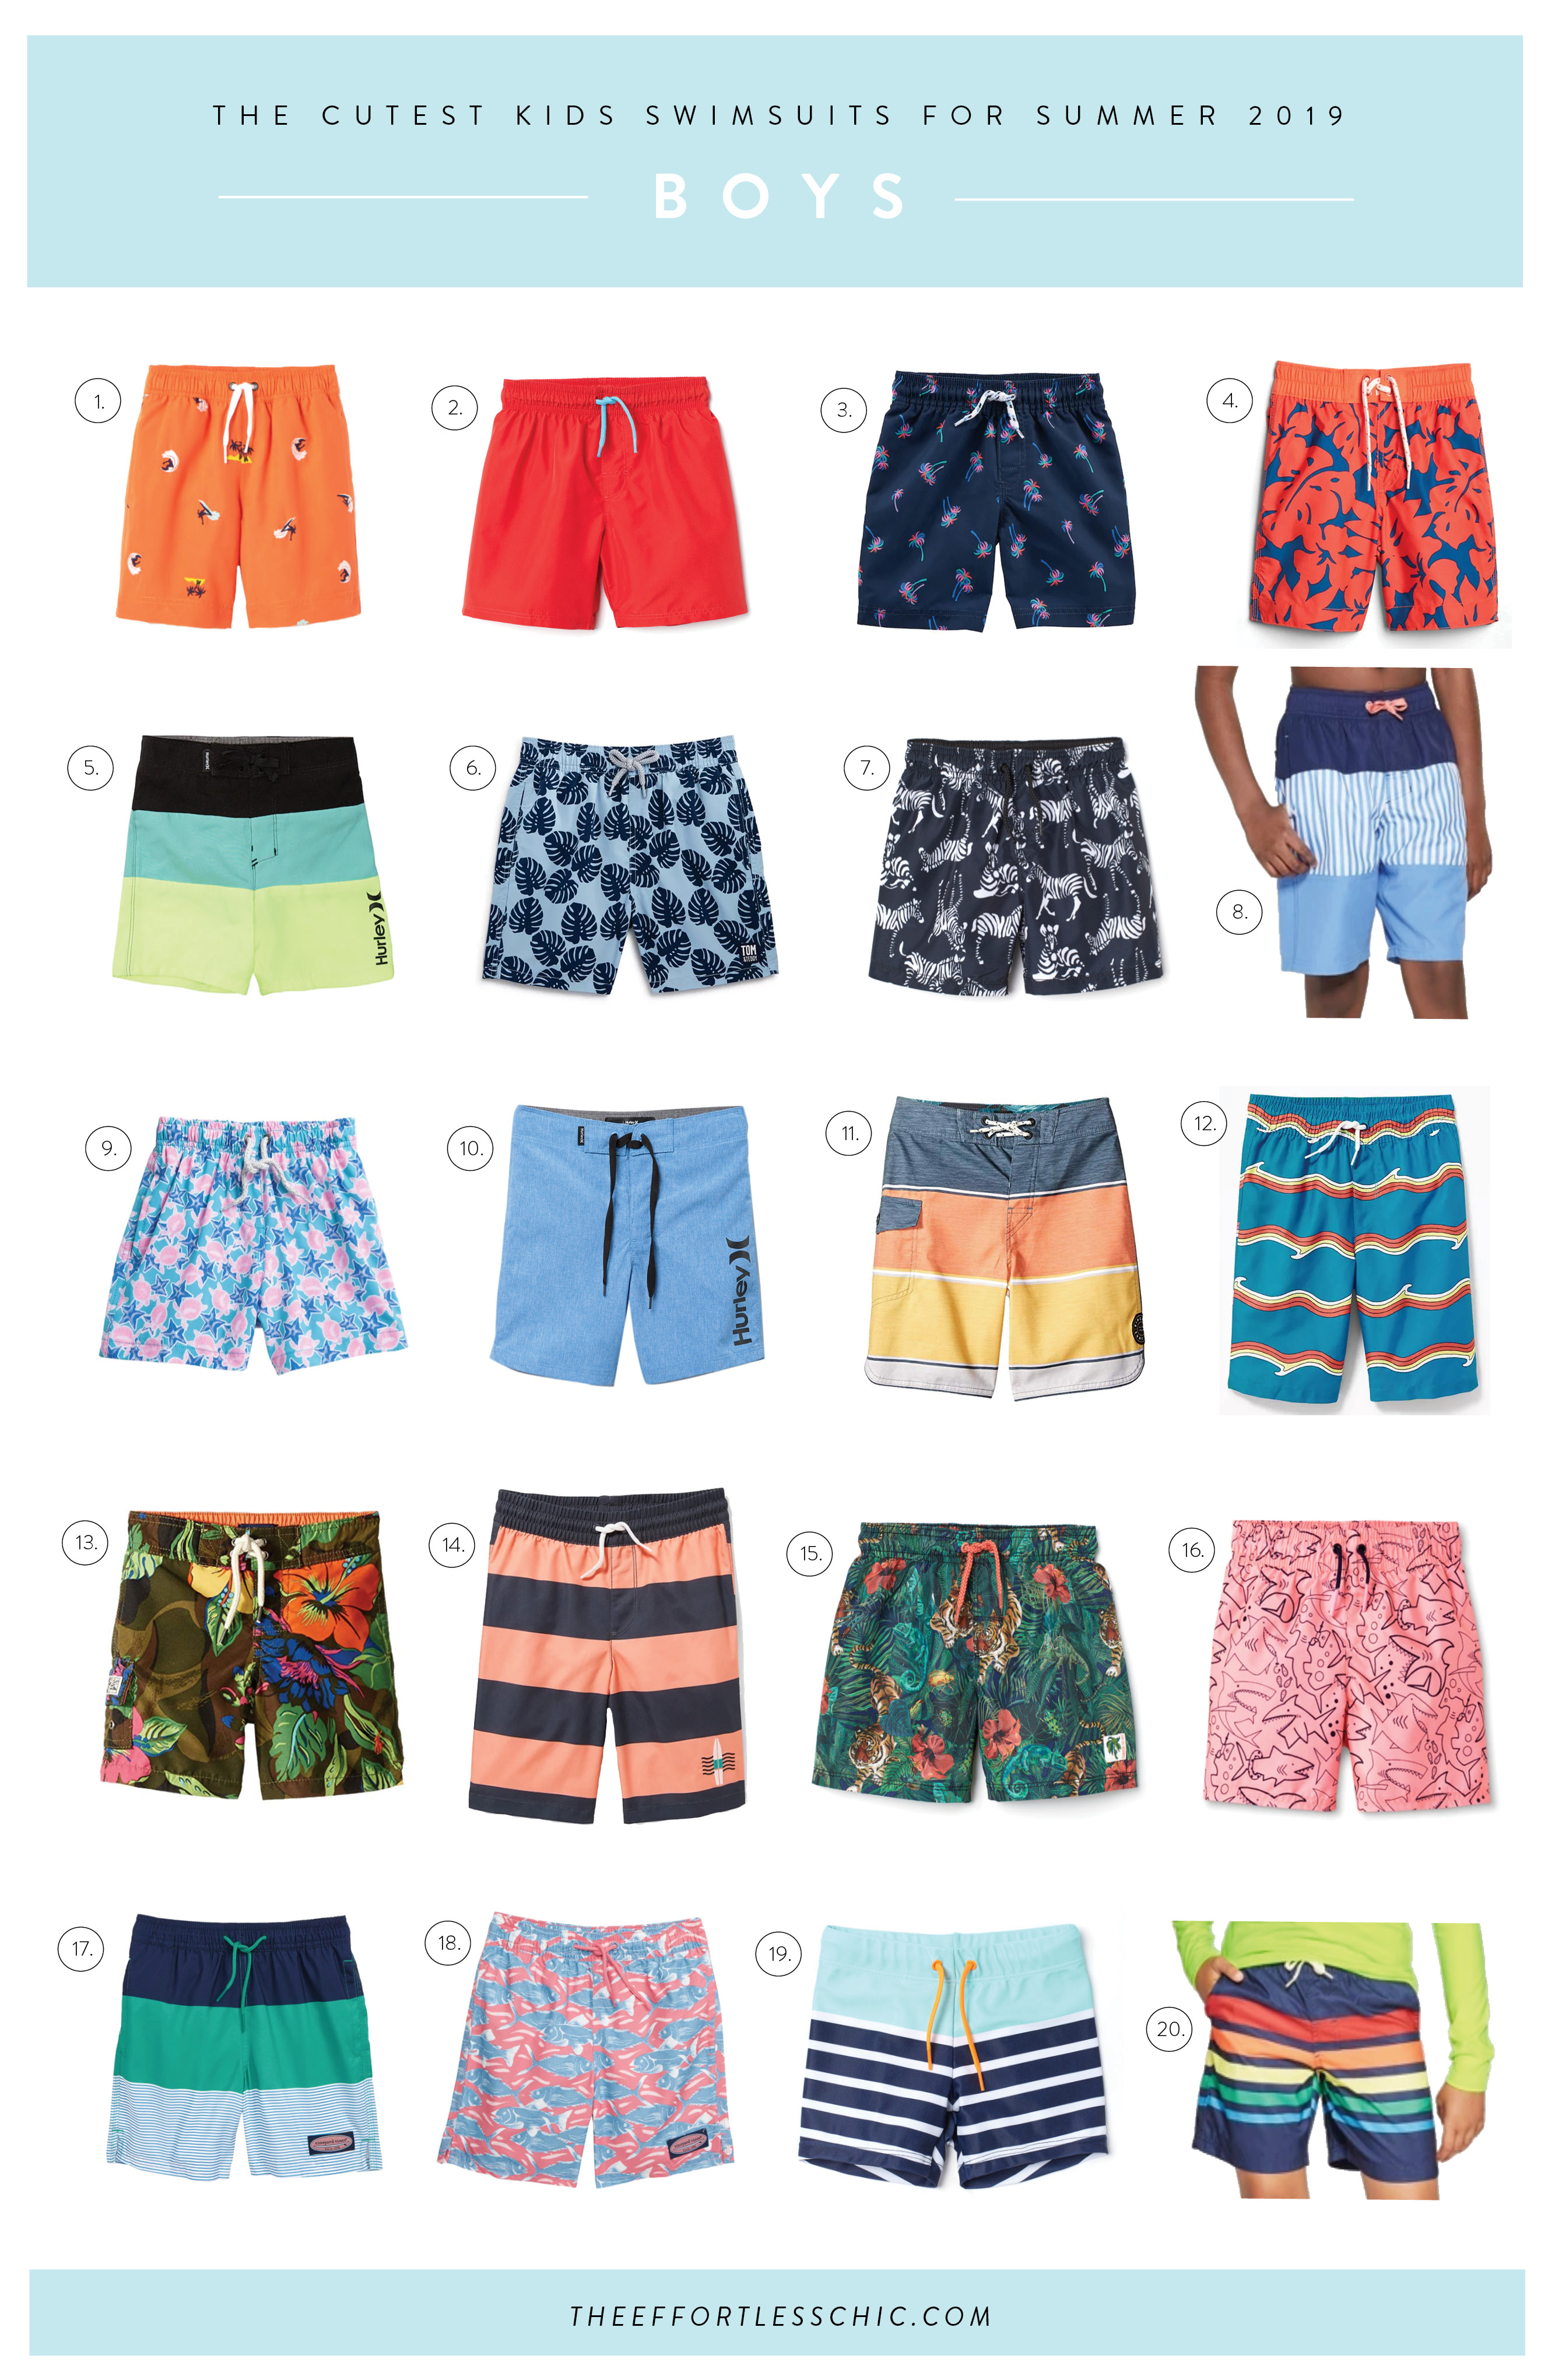 A collage of Kids Beachwear - boy's trunks